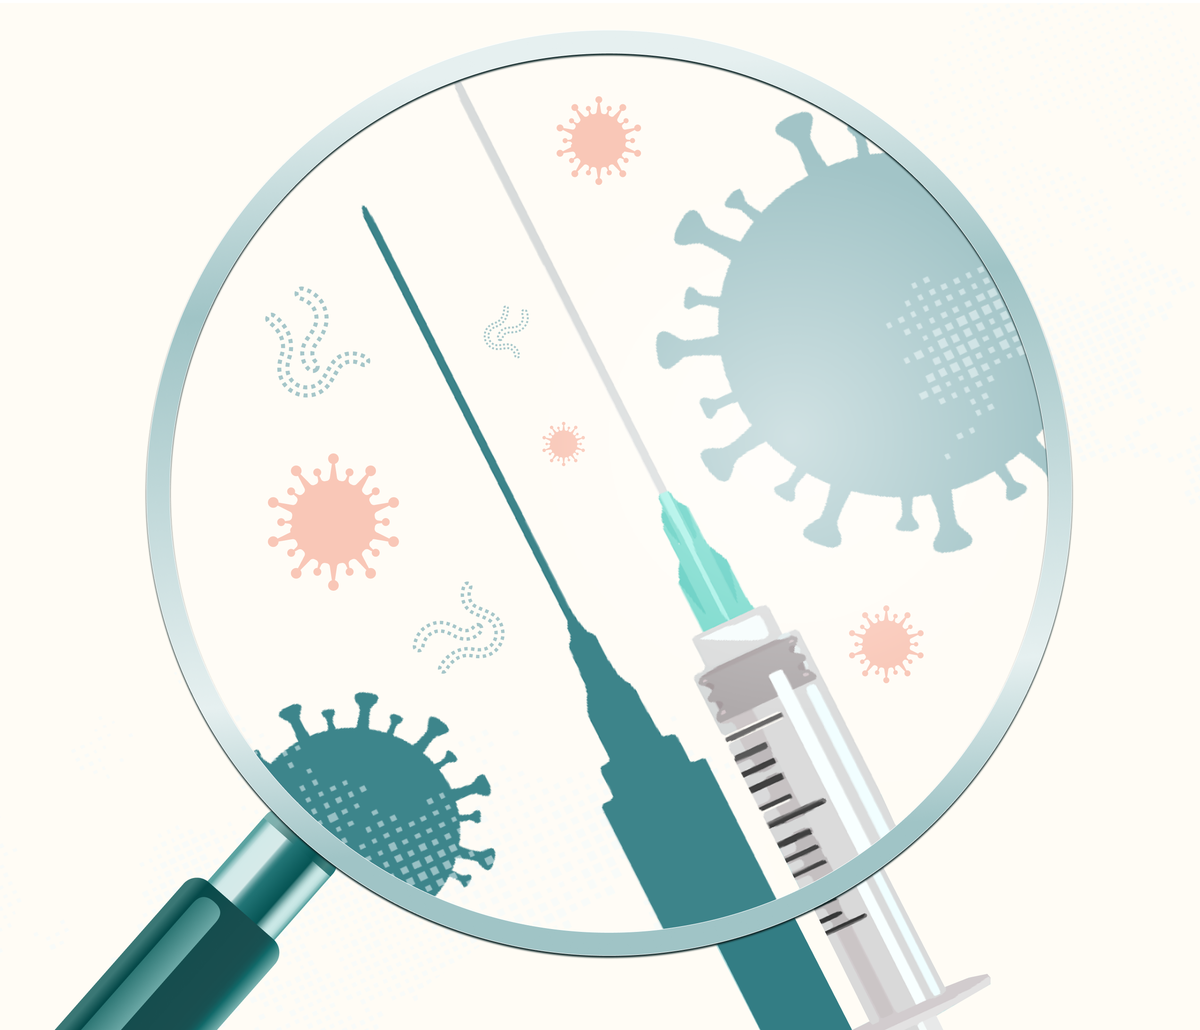 Sign up to The Independent's expert panel event on Covid vaccines